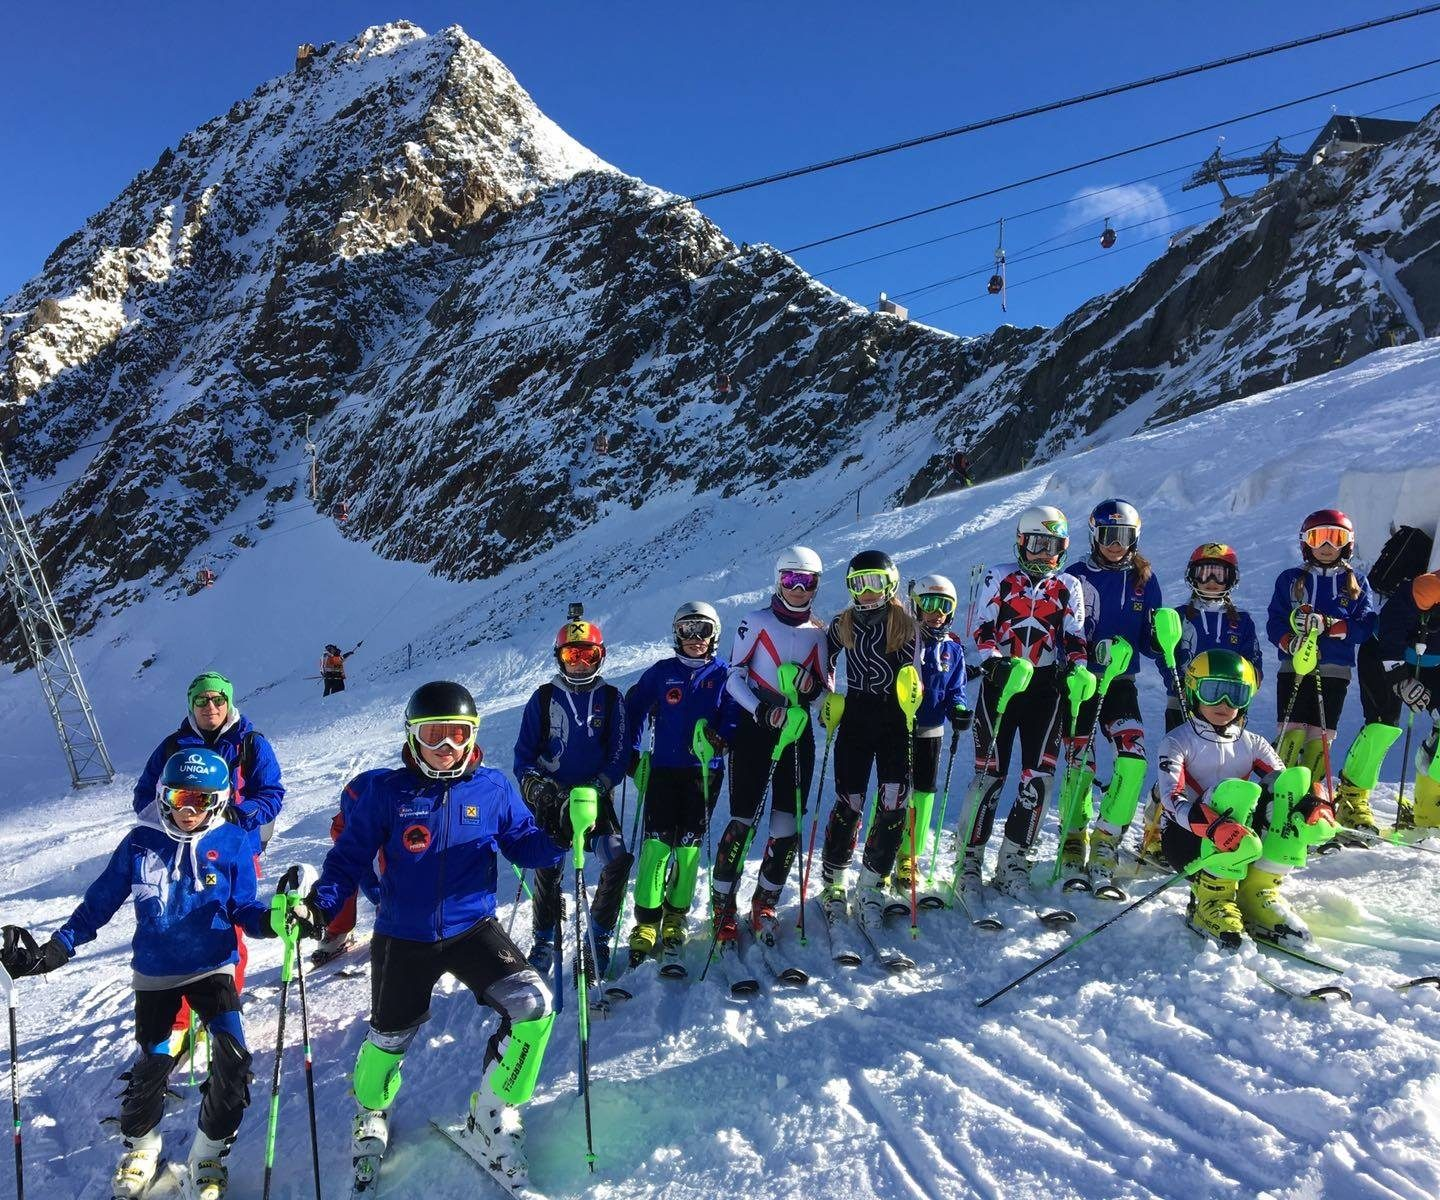 Trainingskurs am Stubaier Gletscher